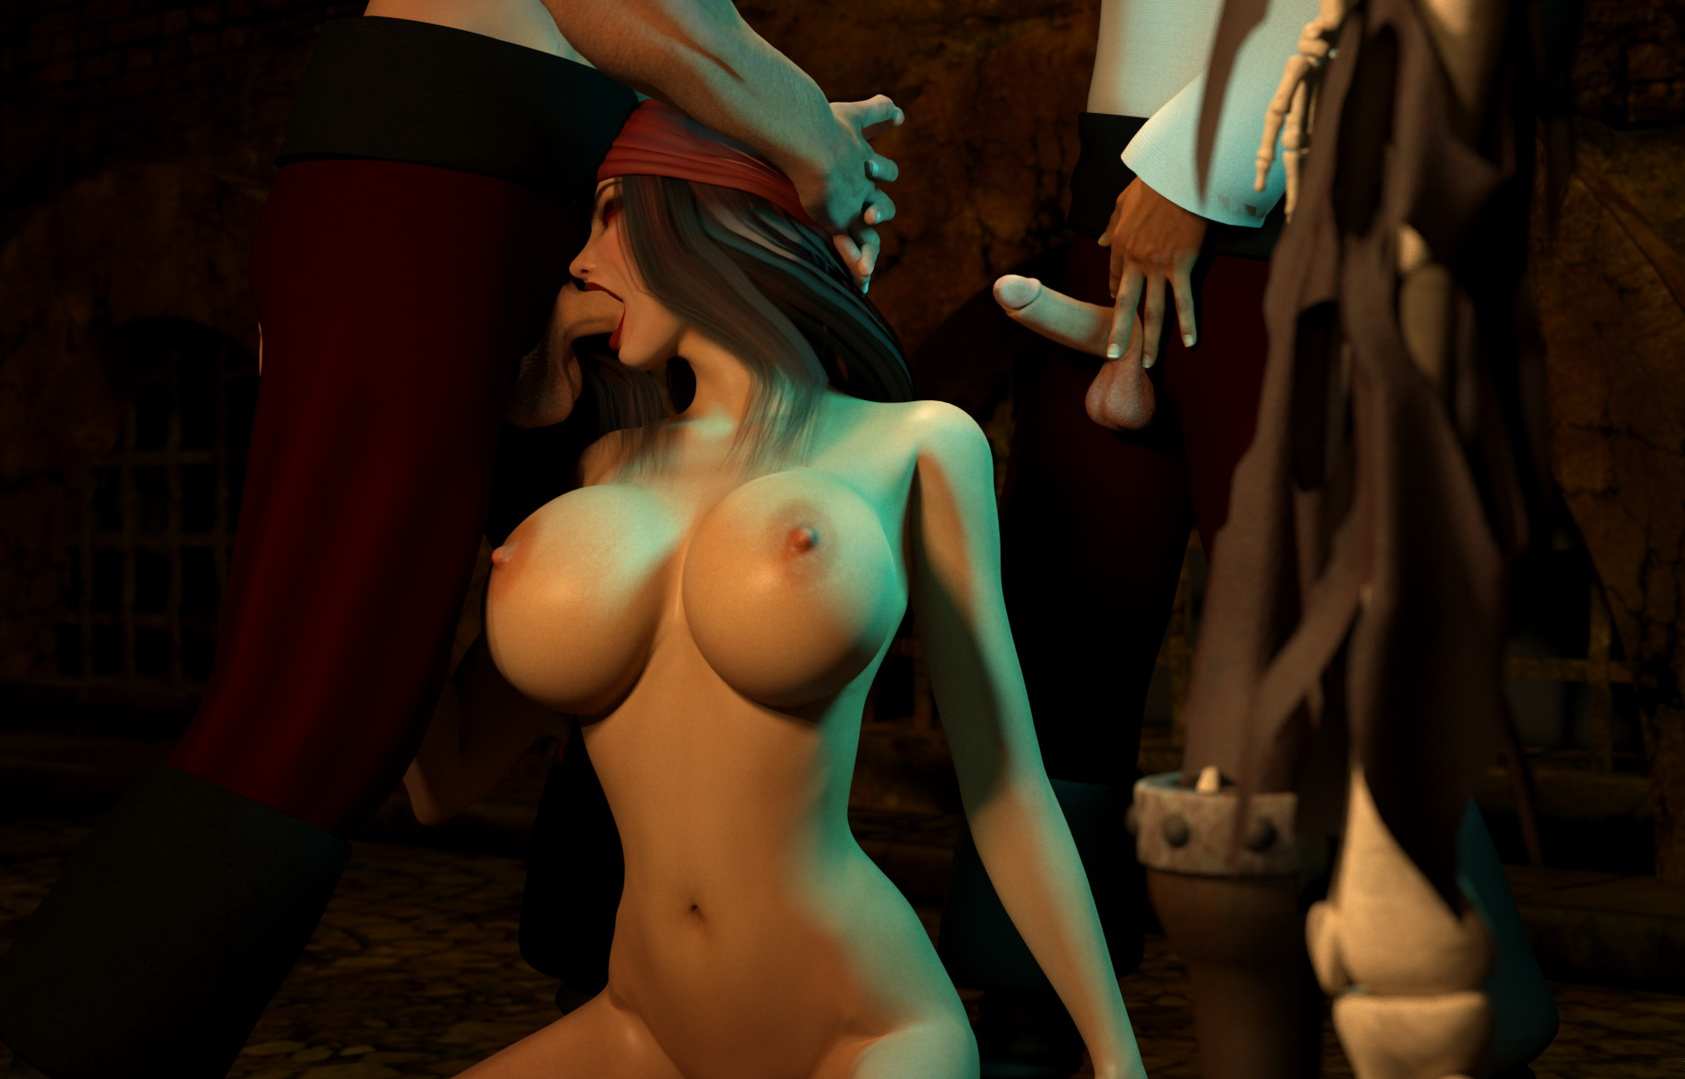 3d animated porn wallpaper free download pron image